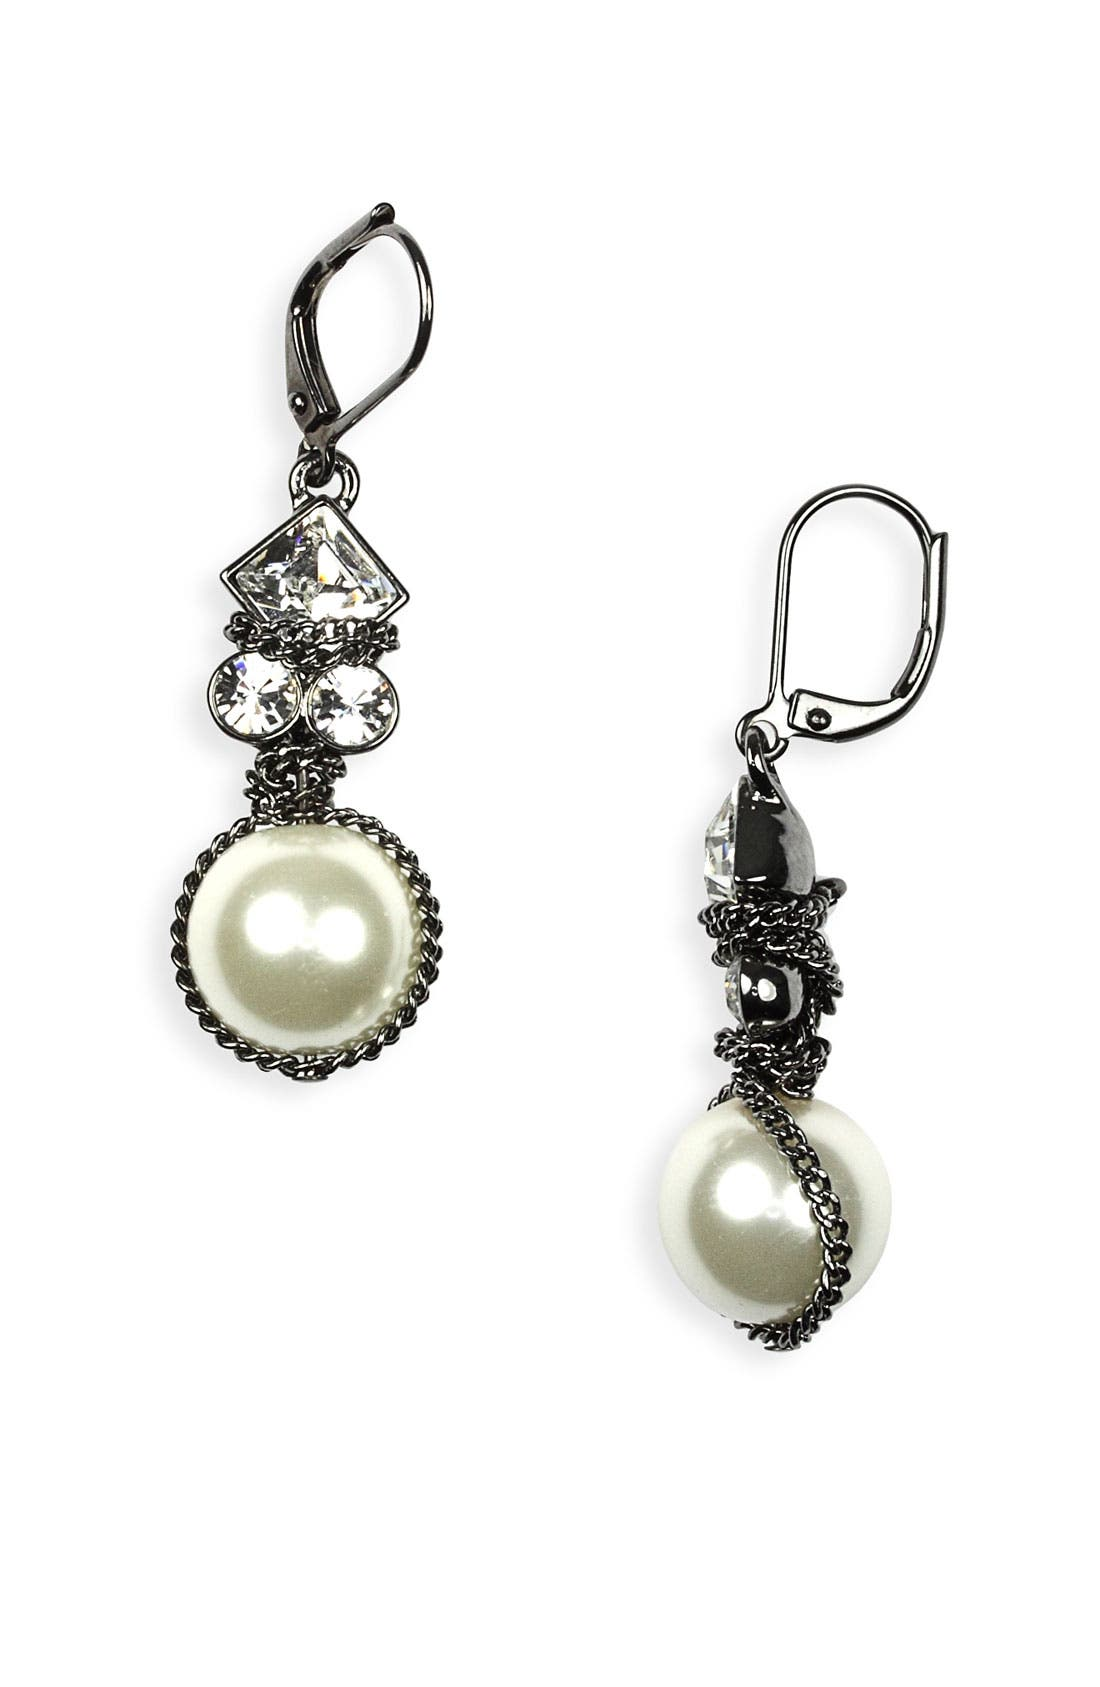 GIVENCHY, Small Glass Pearl Earrings, Main thumbnail 1, color, 020